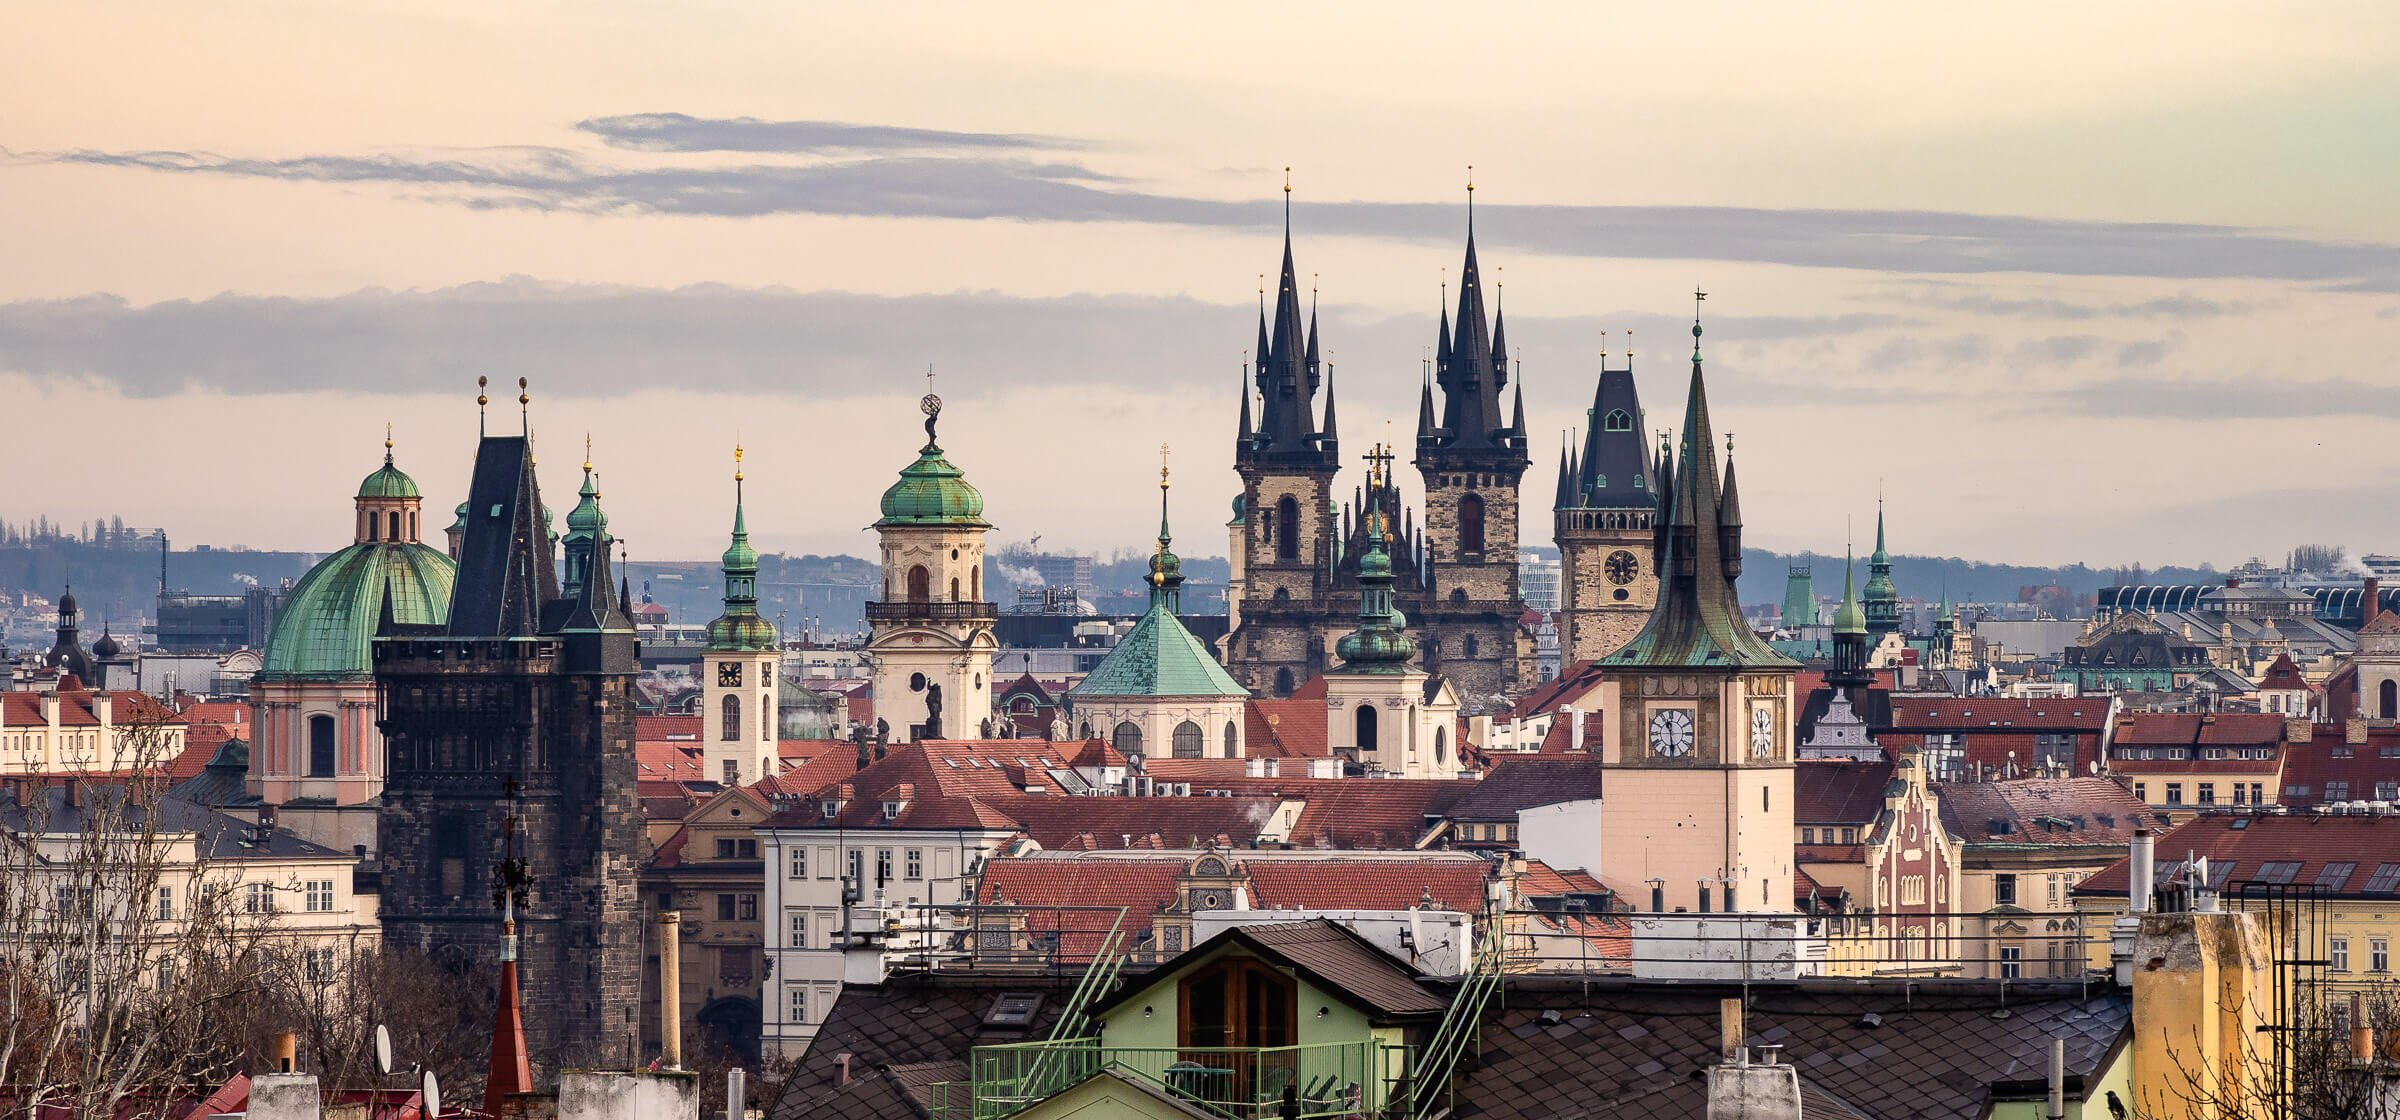 Panorama of the Prague Old Town Centre, Czech Republic